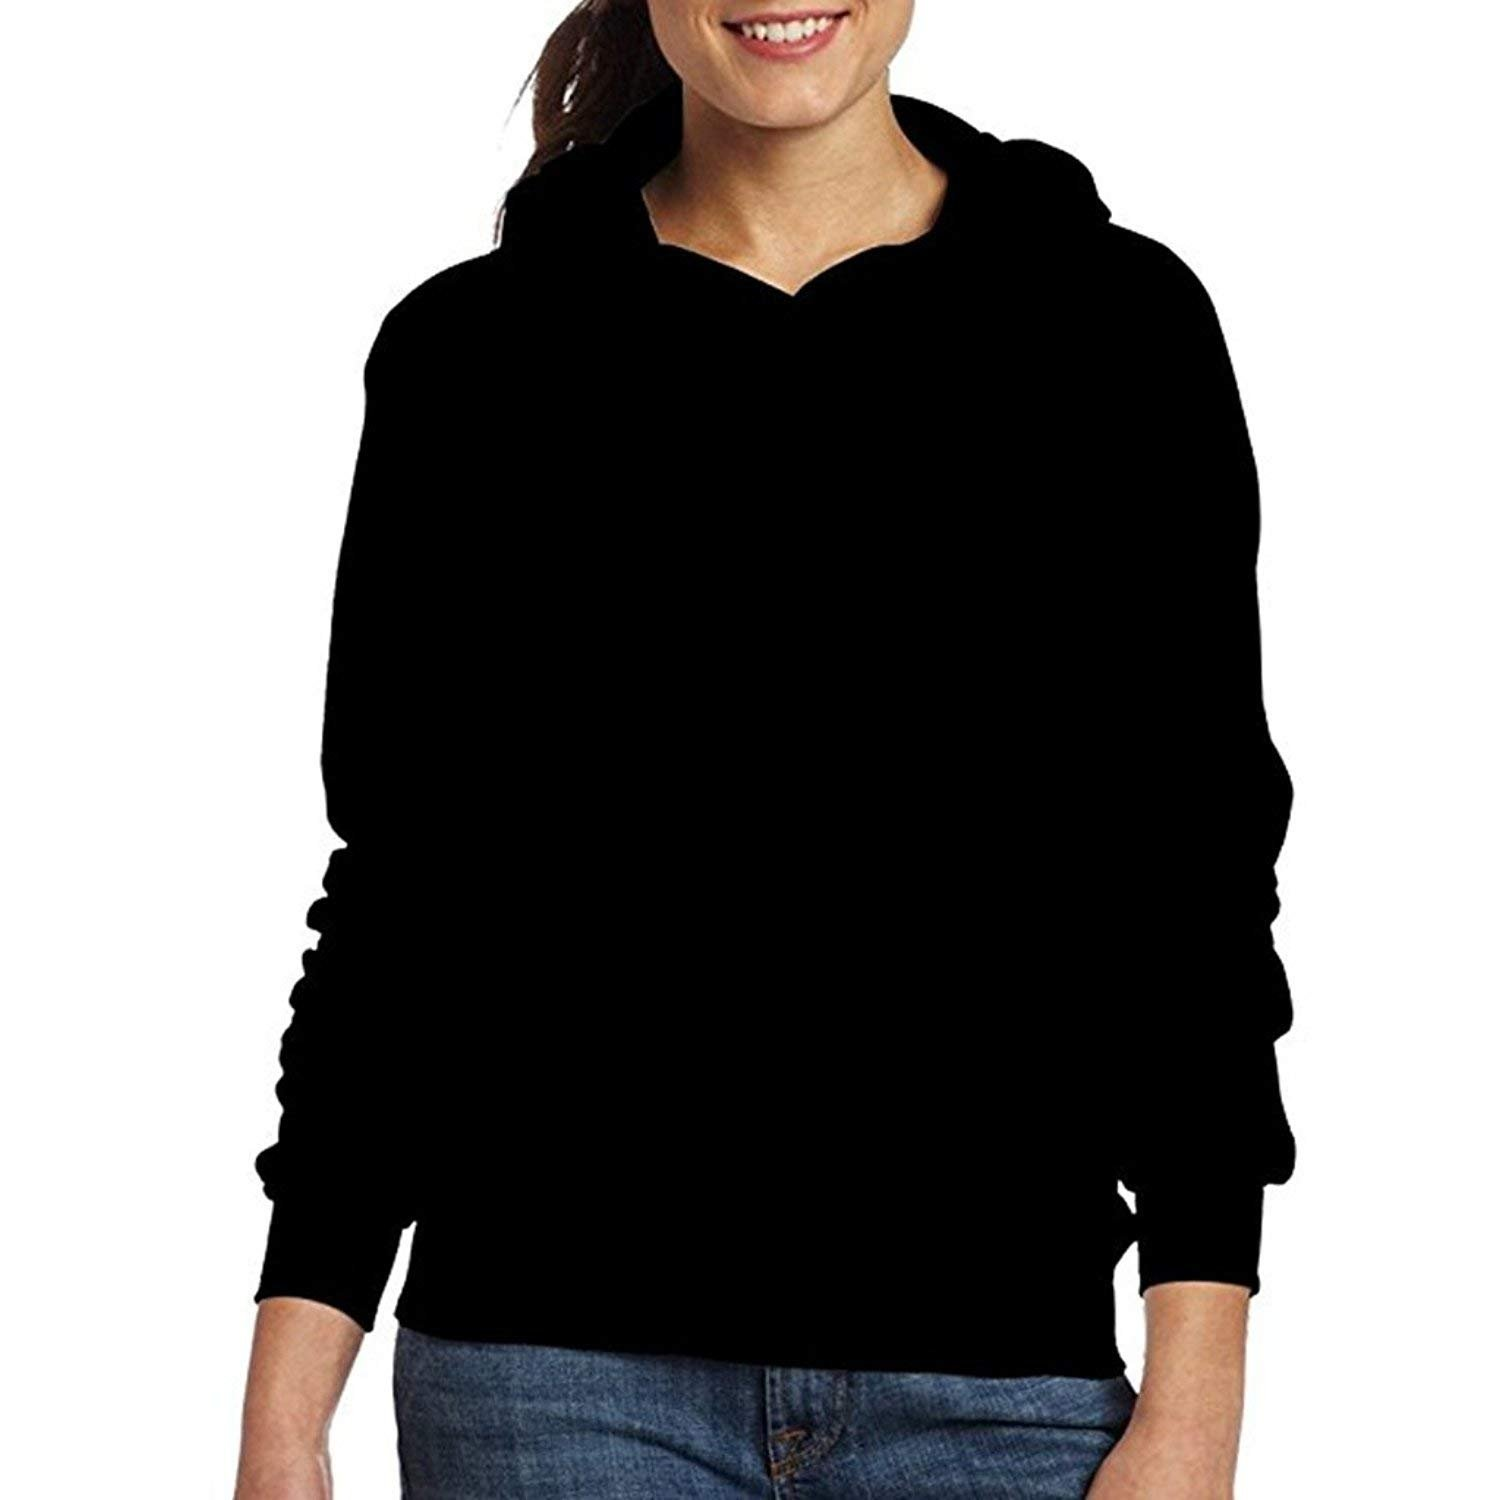 Sweatshirt Cup Customized Hoodies